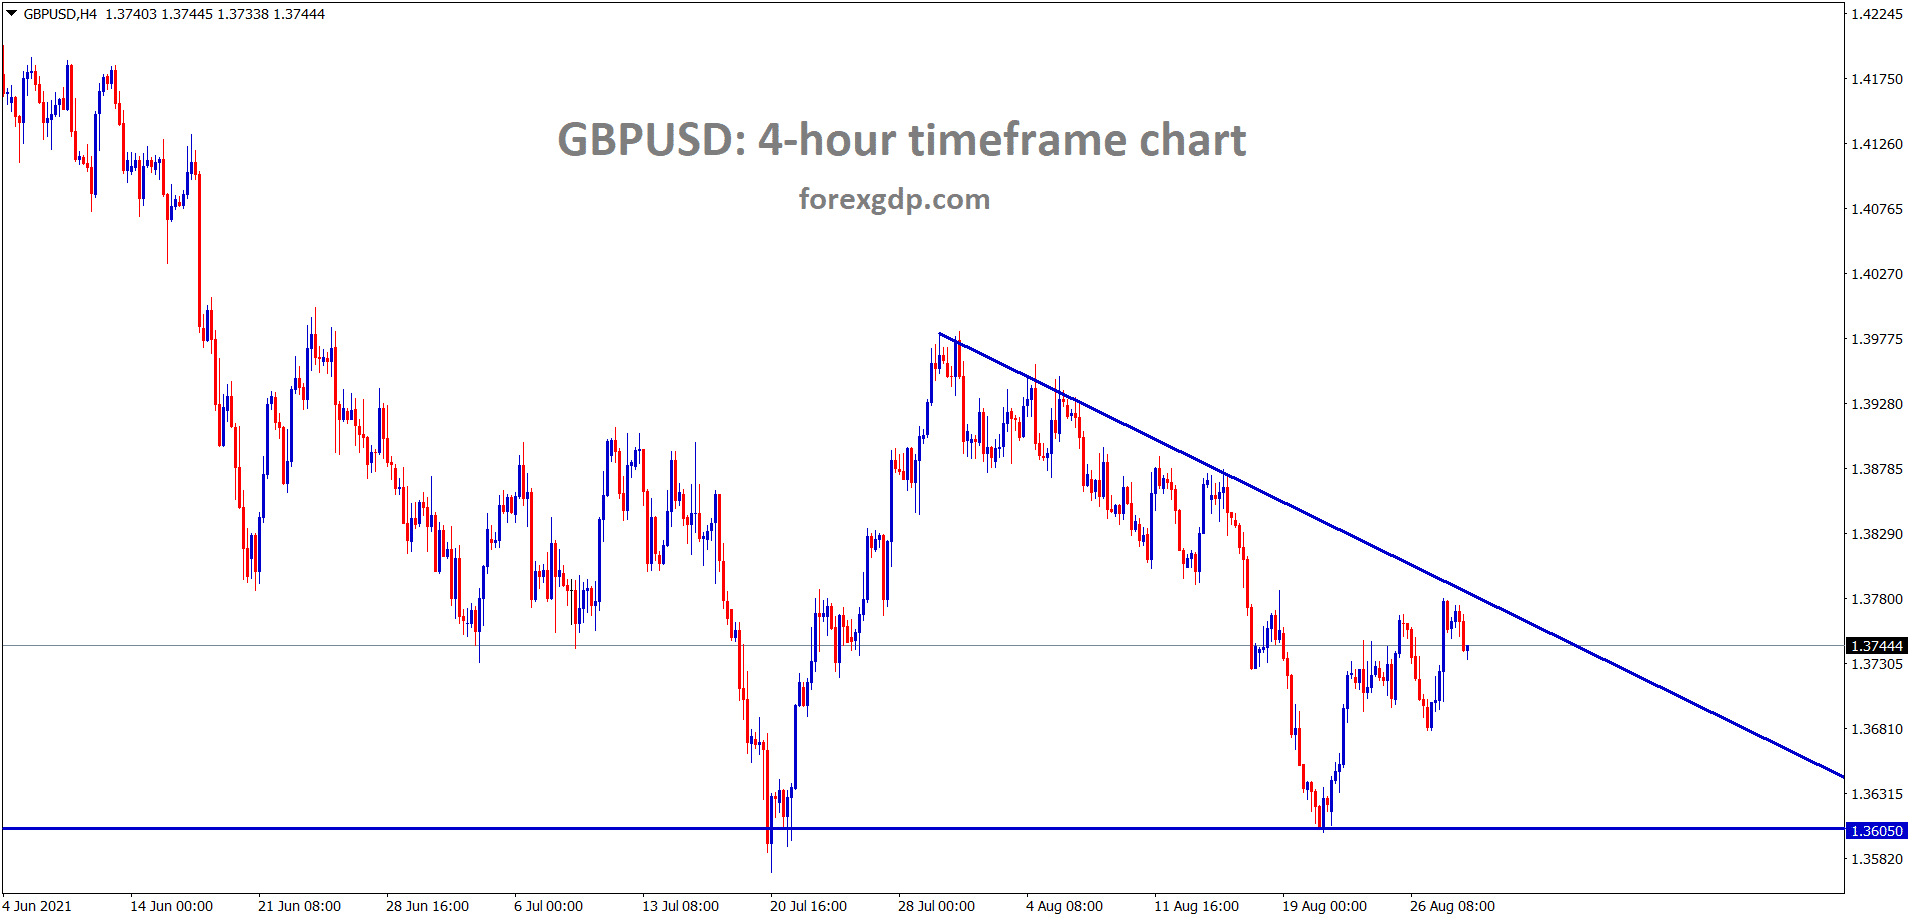 GBPUSD is moving between the descending channel range in the H4 chart wait for the breakout from this triangle pattern